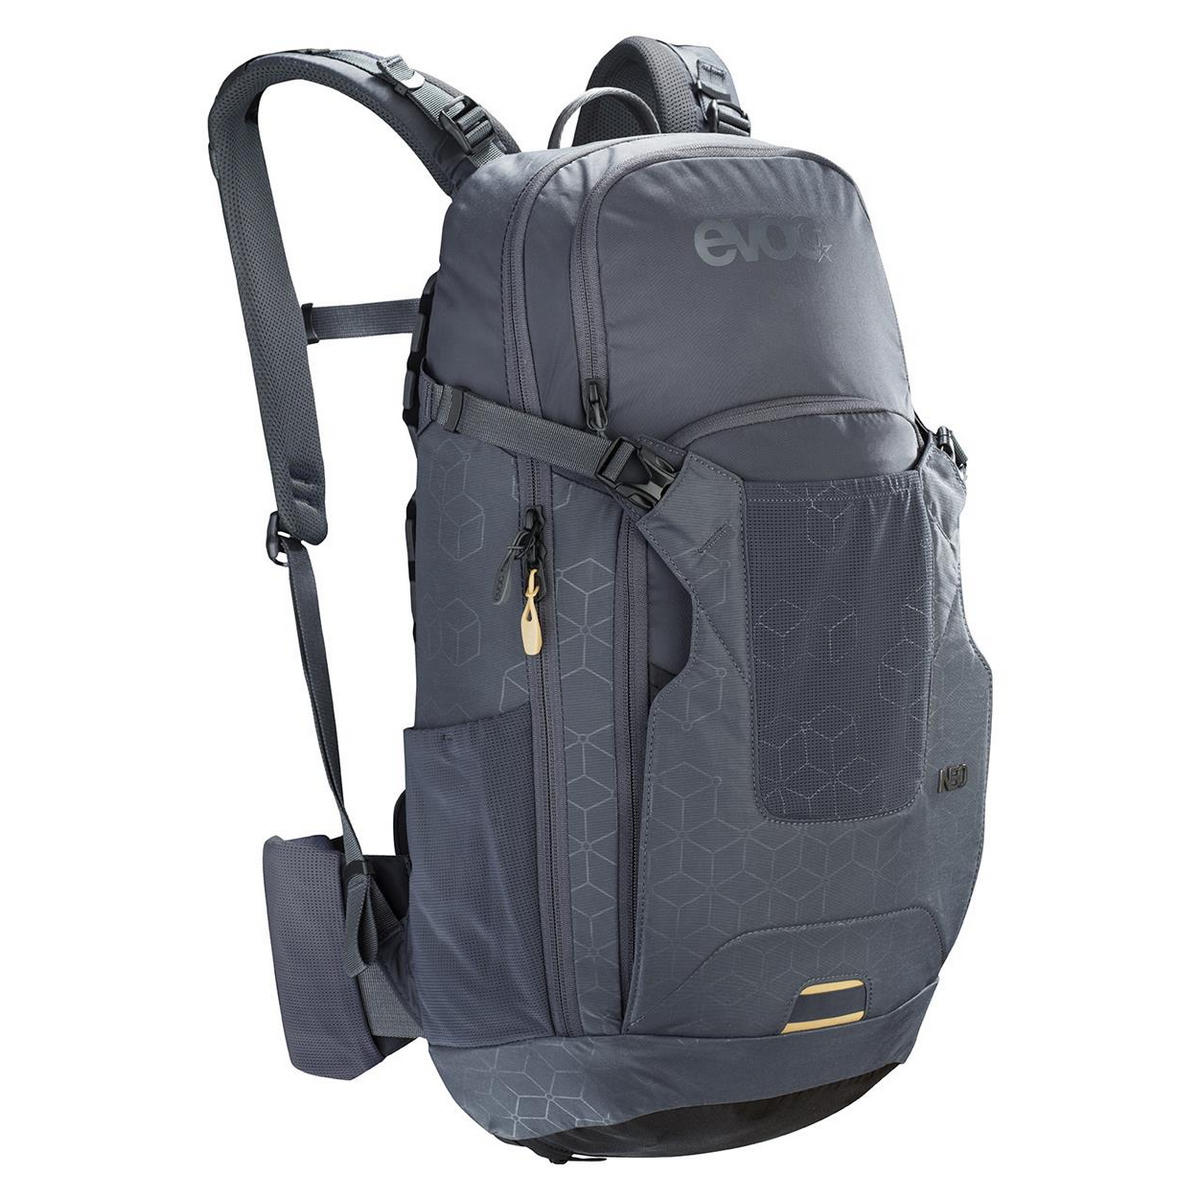 Backpack Neo 16 lt carbon grey size S/M